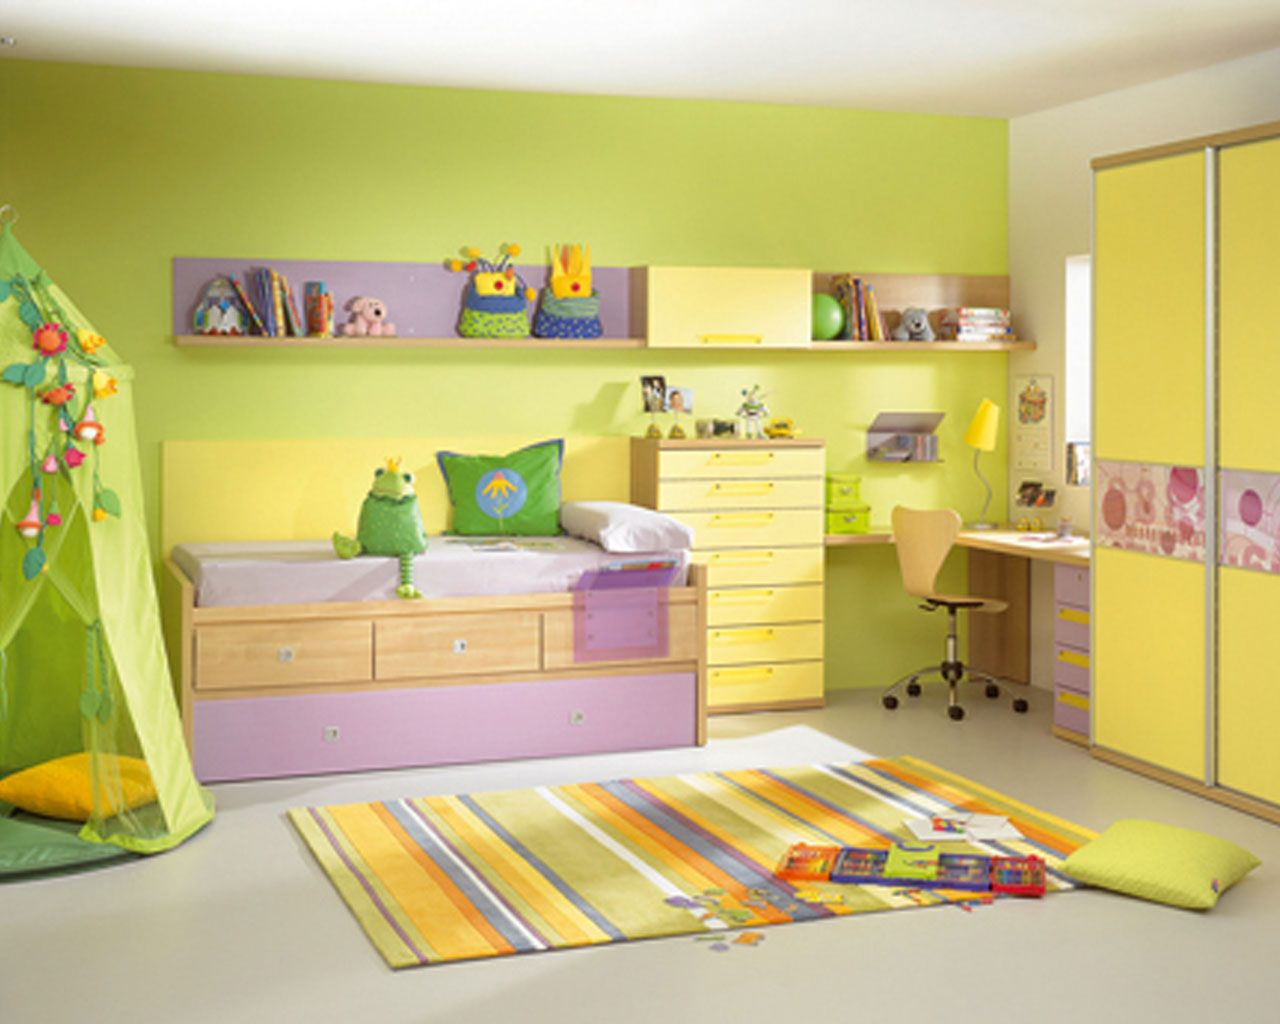 Lime Green and White Themed Kids Room Paint Ideas with Simple Brown ...